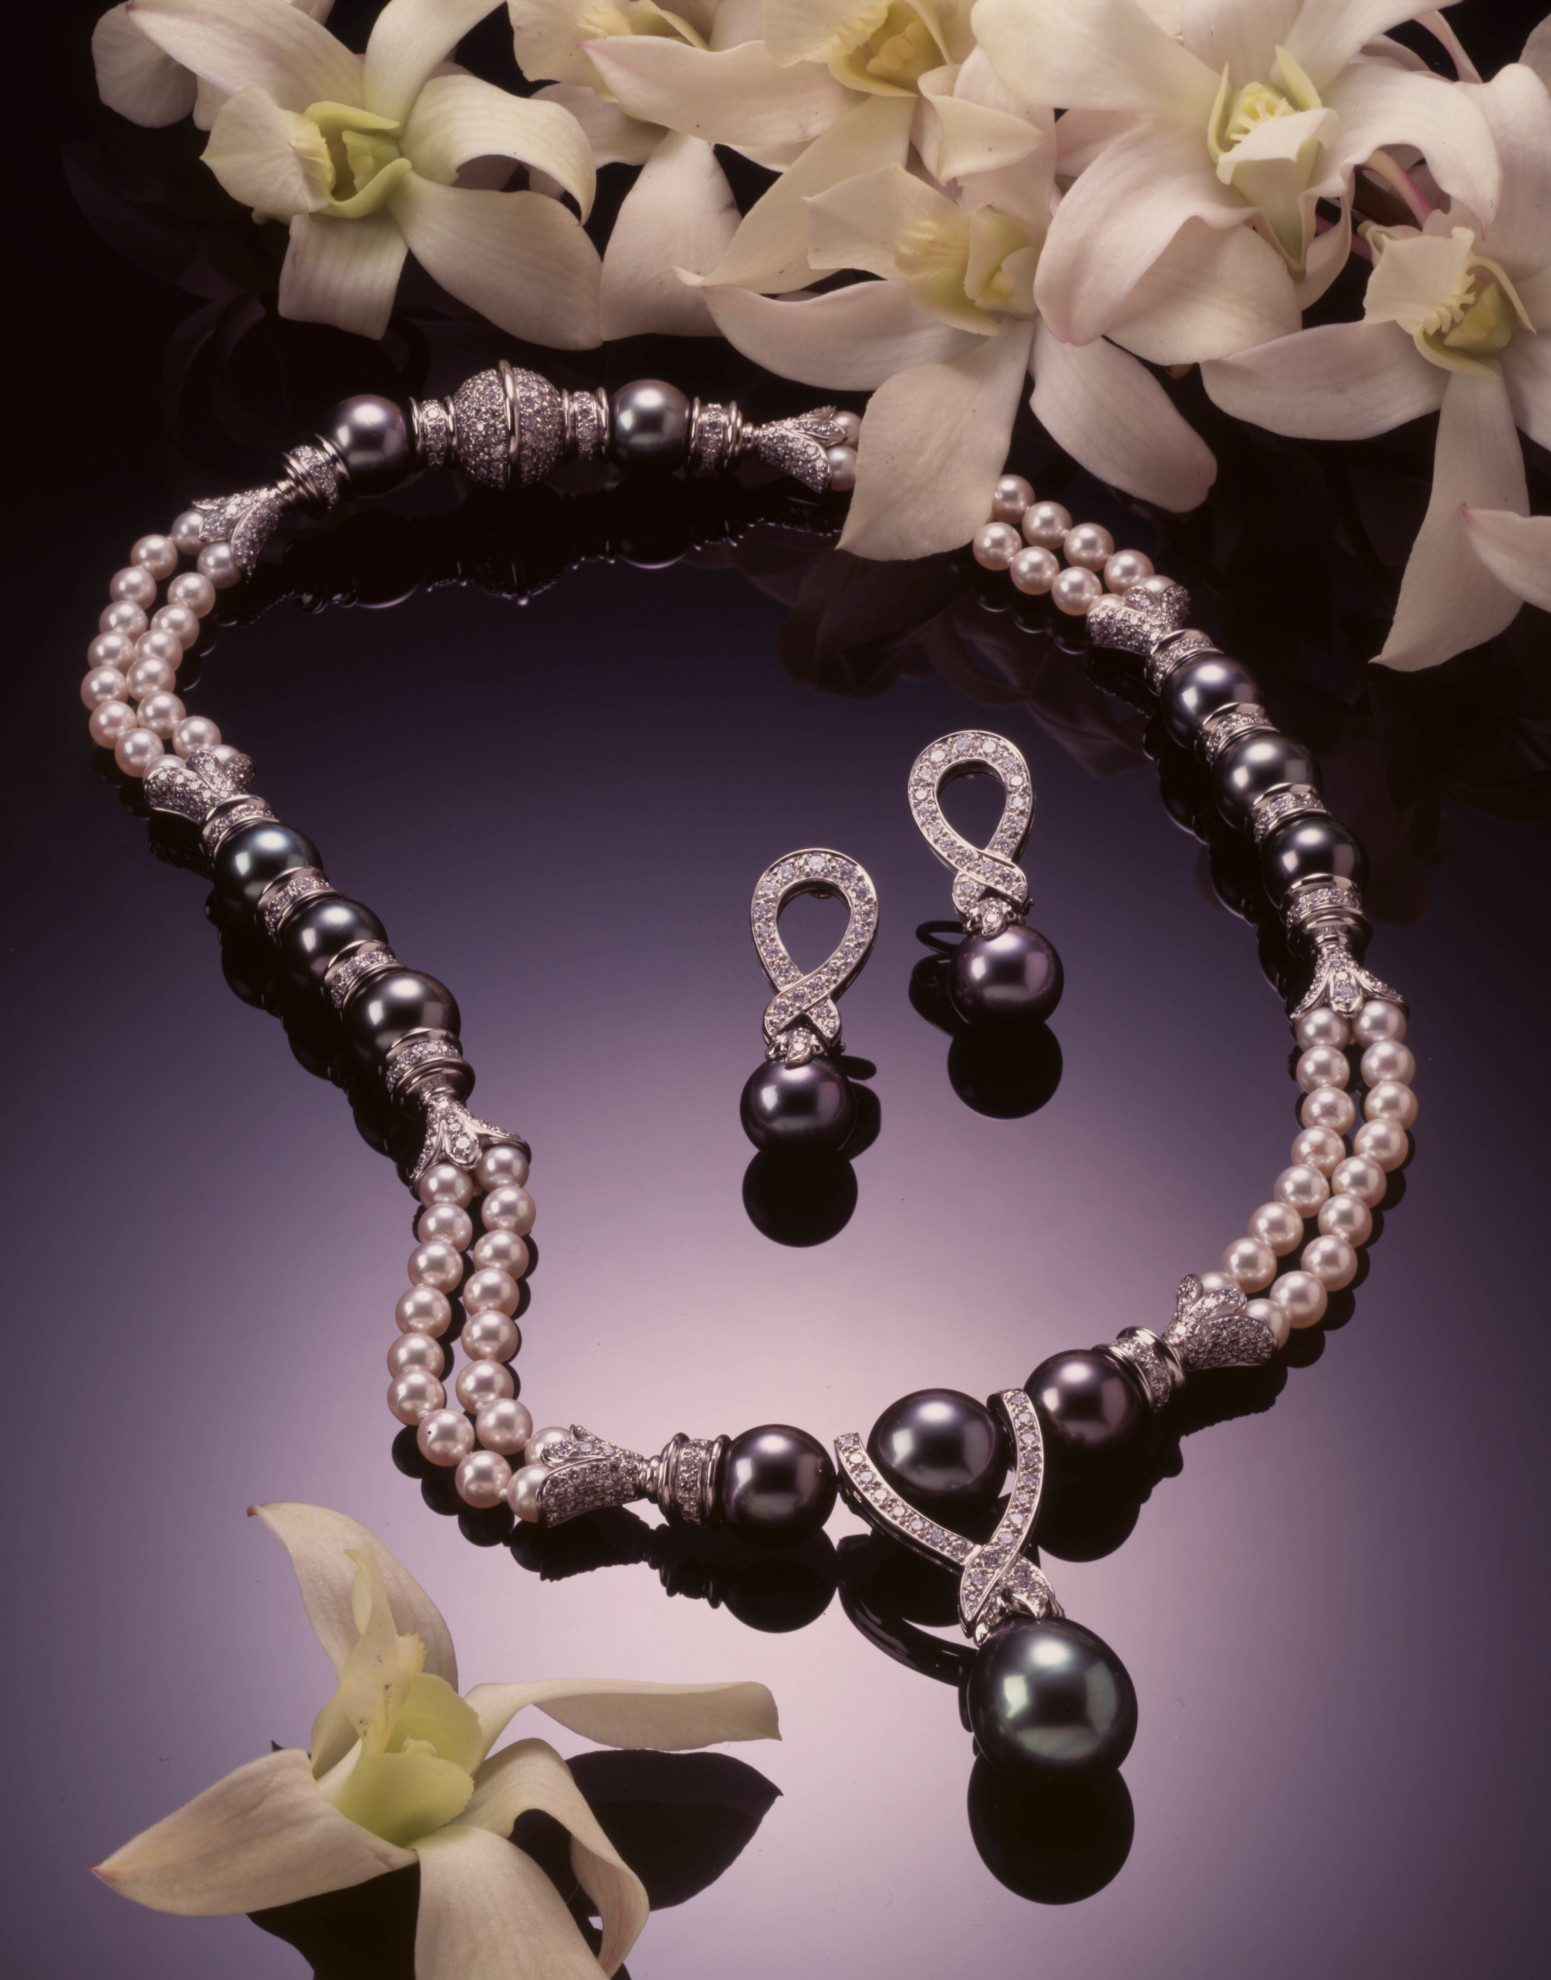 Tahitian pearls jewelry design for Robert Wan